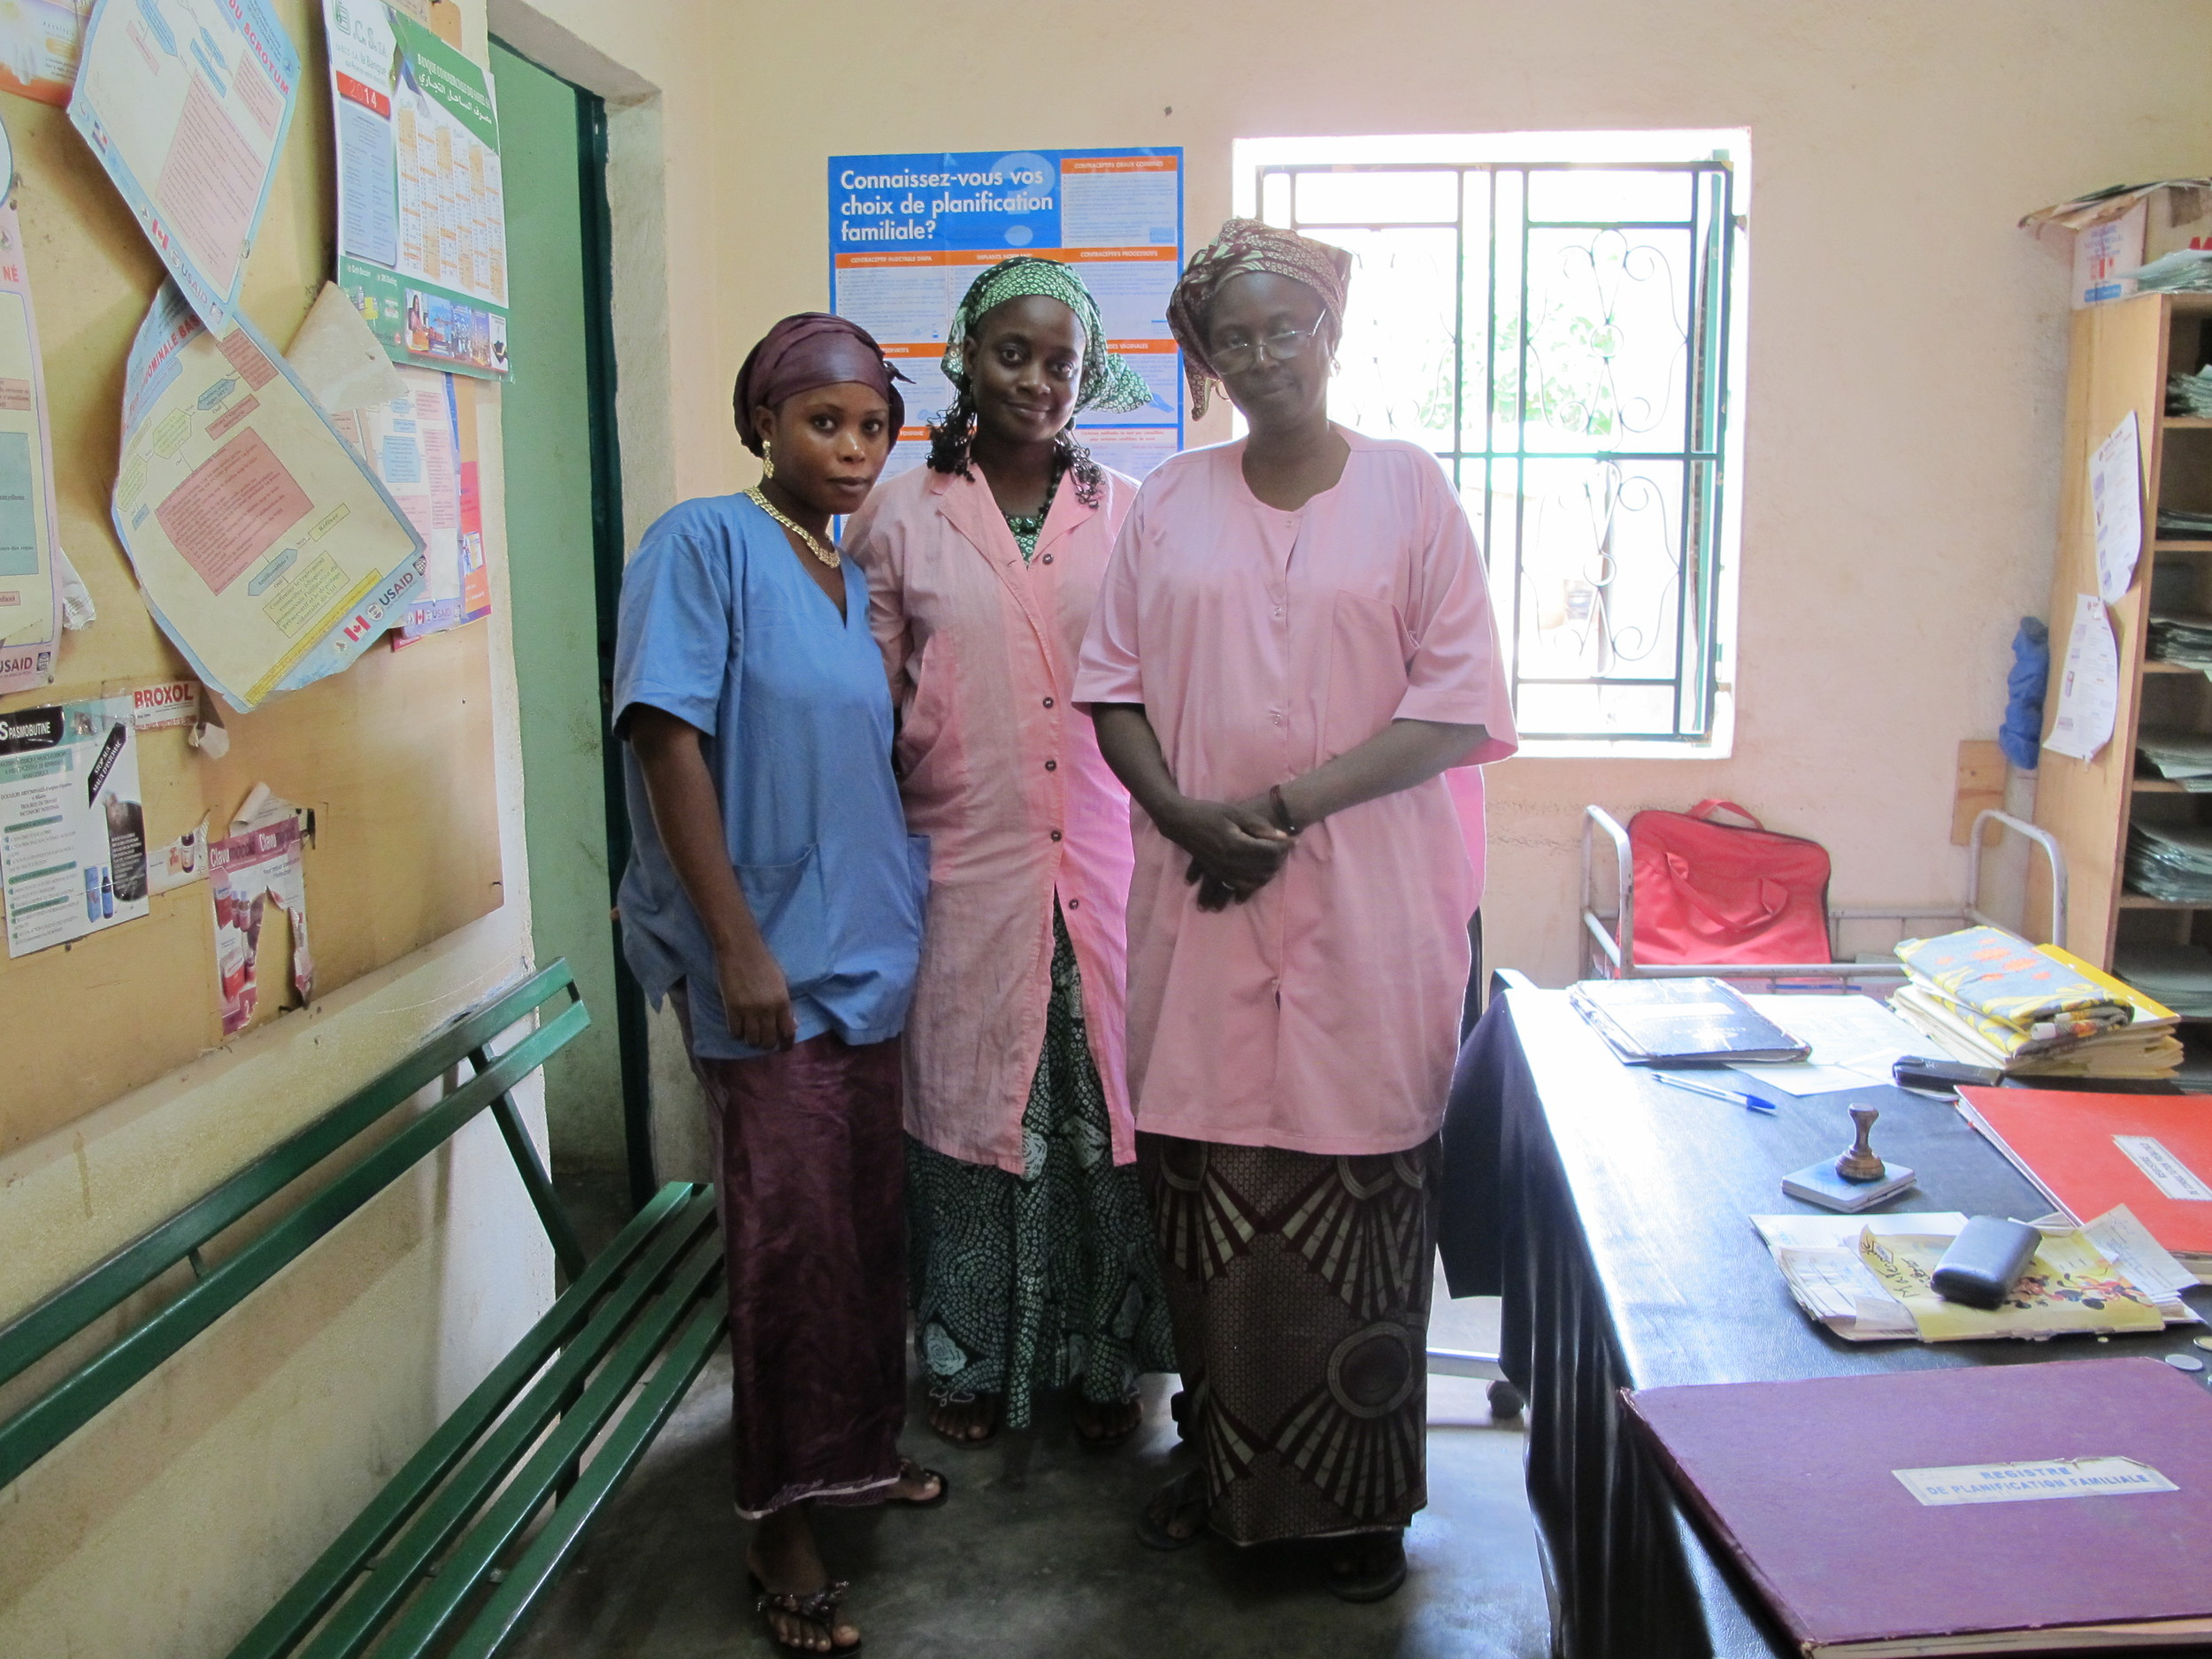 Head midwife, Assetou, with midwives in training